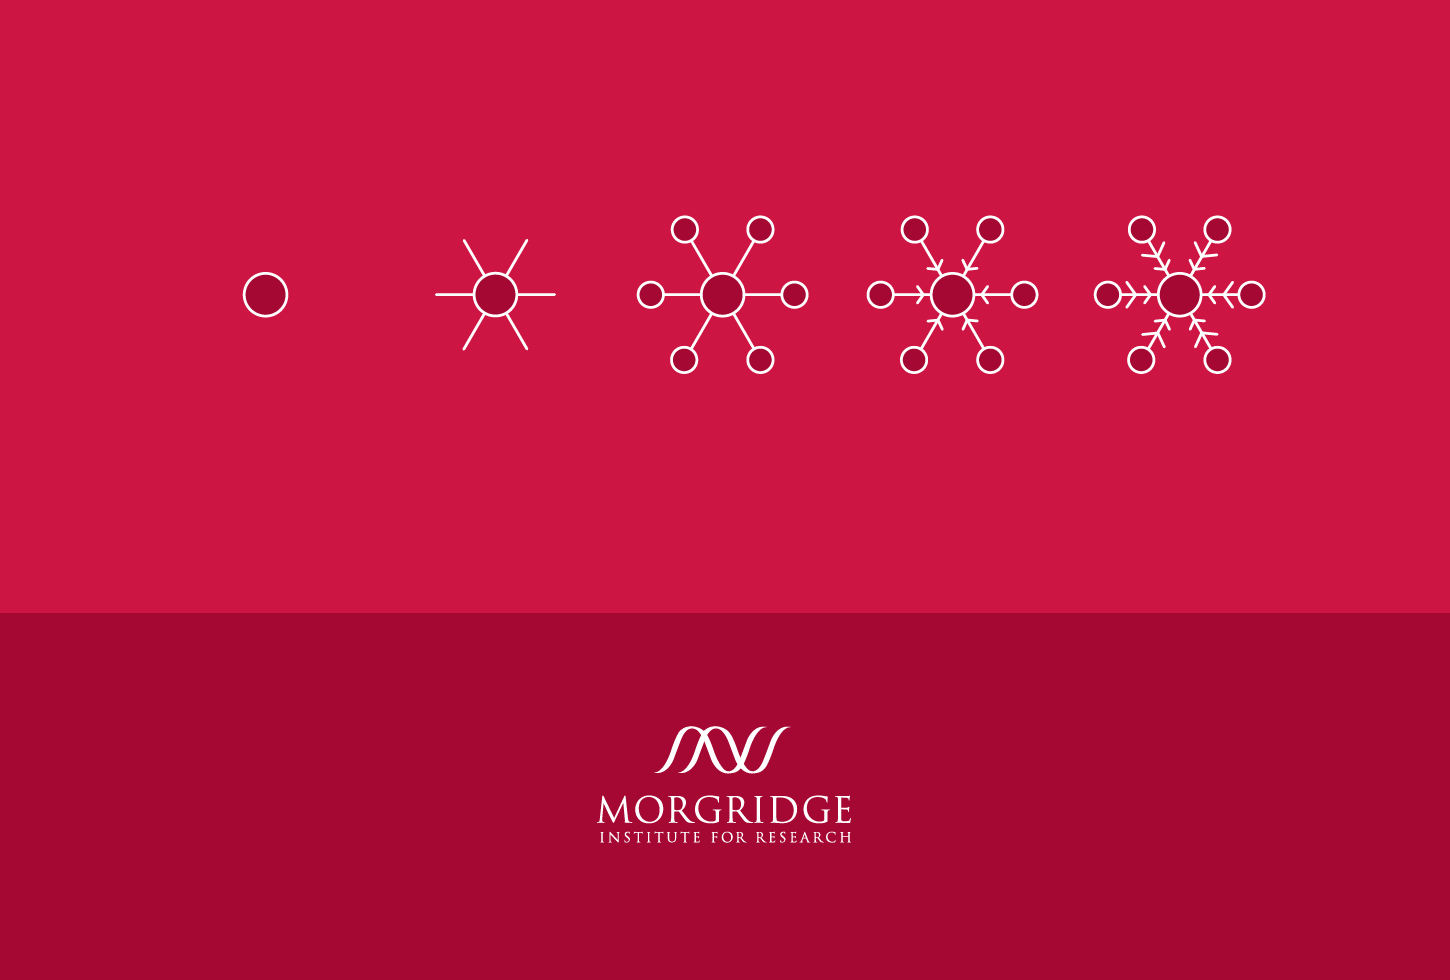 Morgridge holiday card design